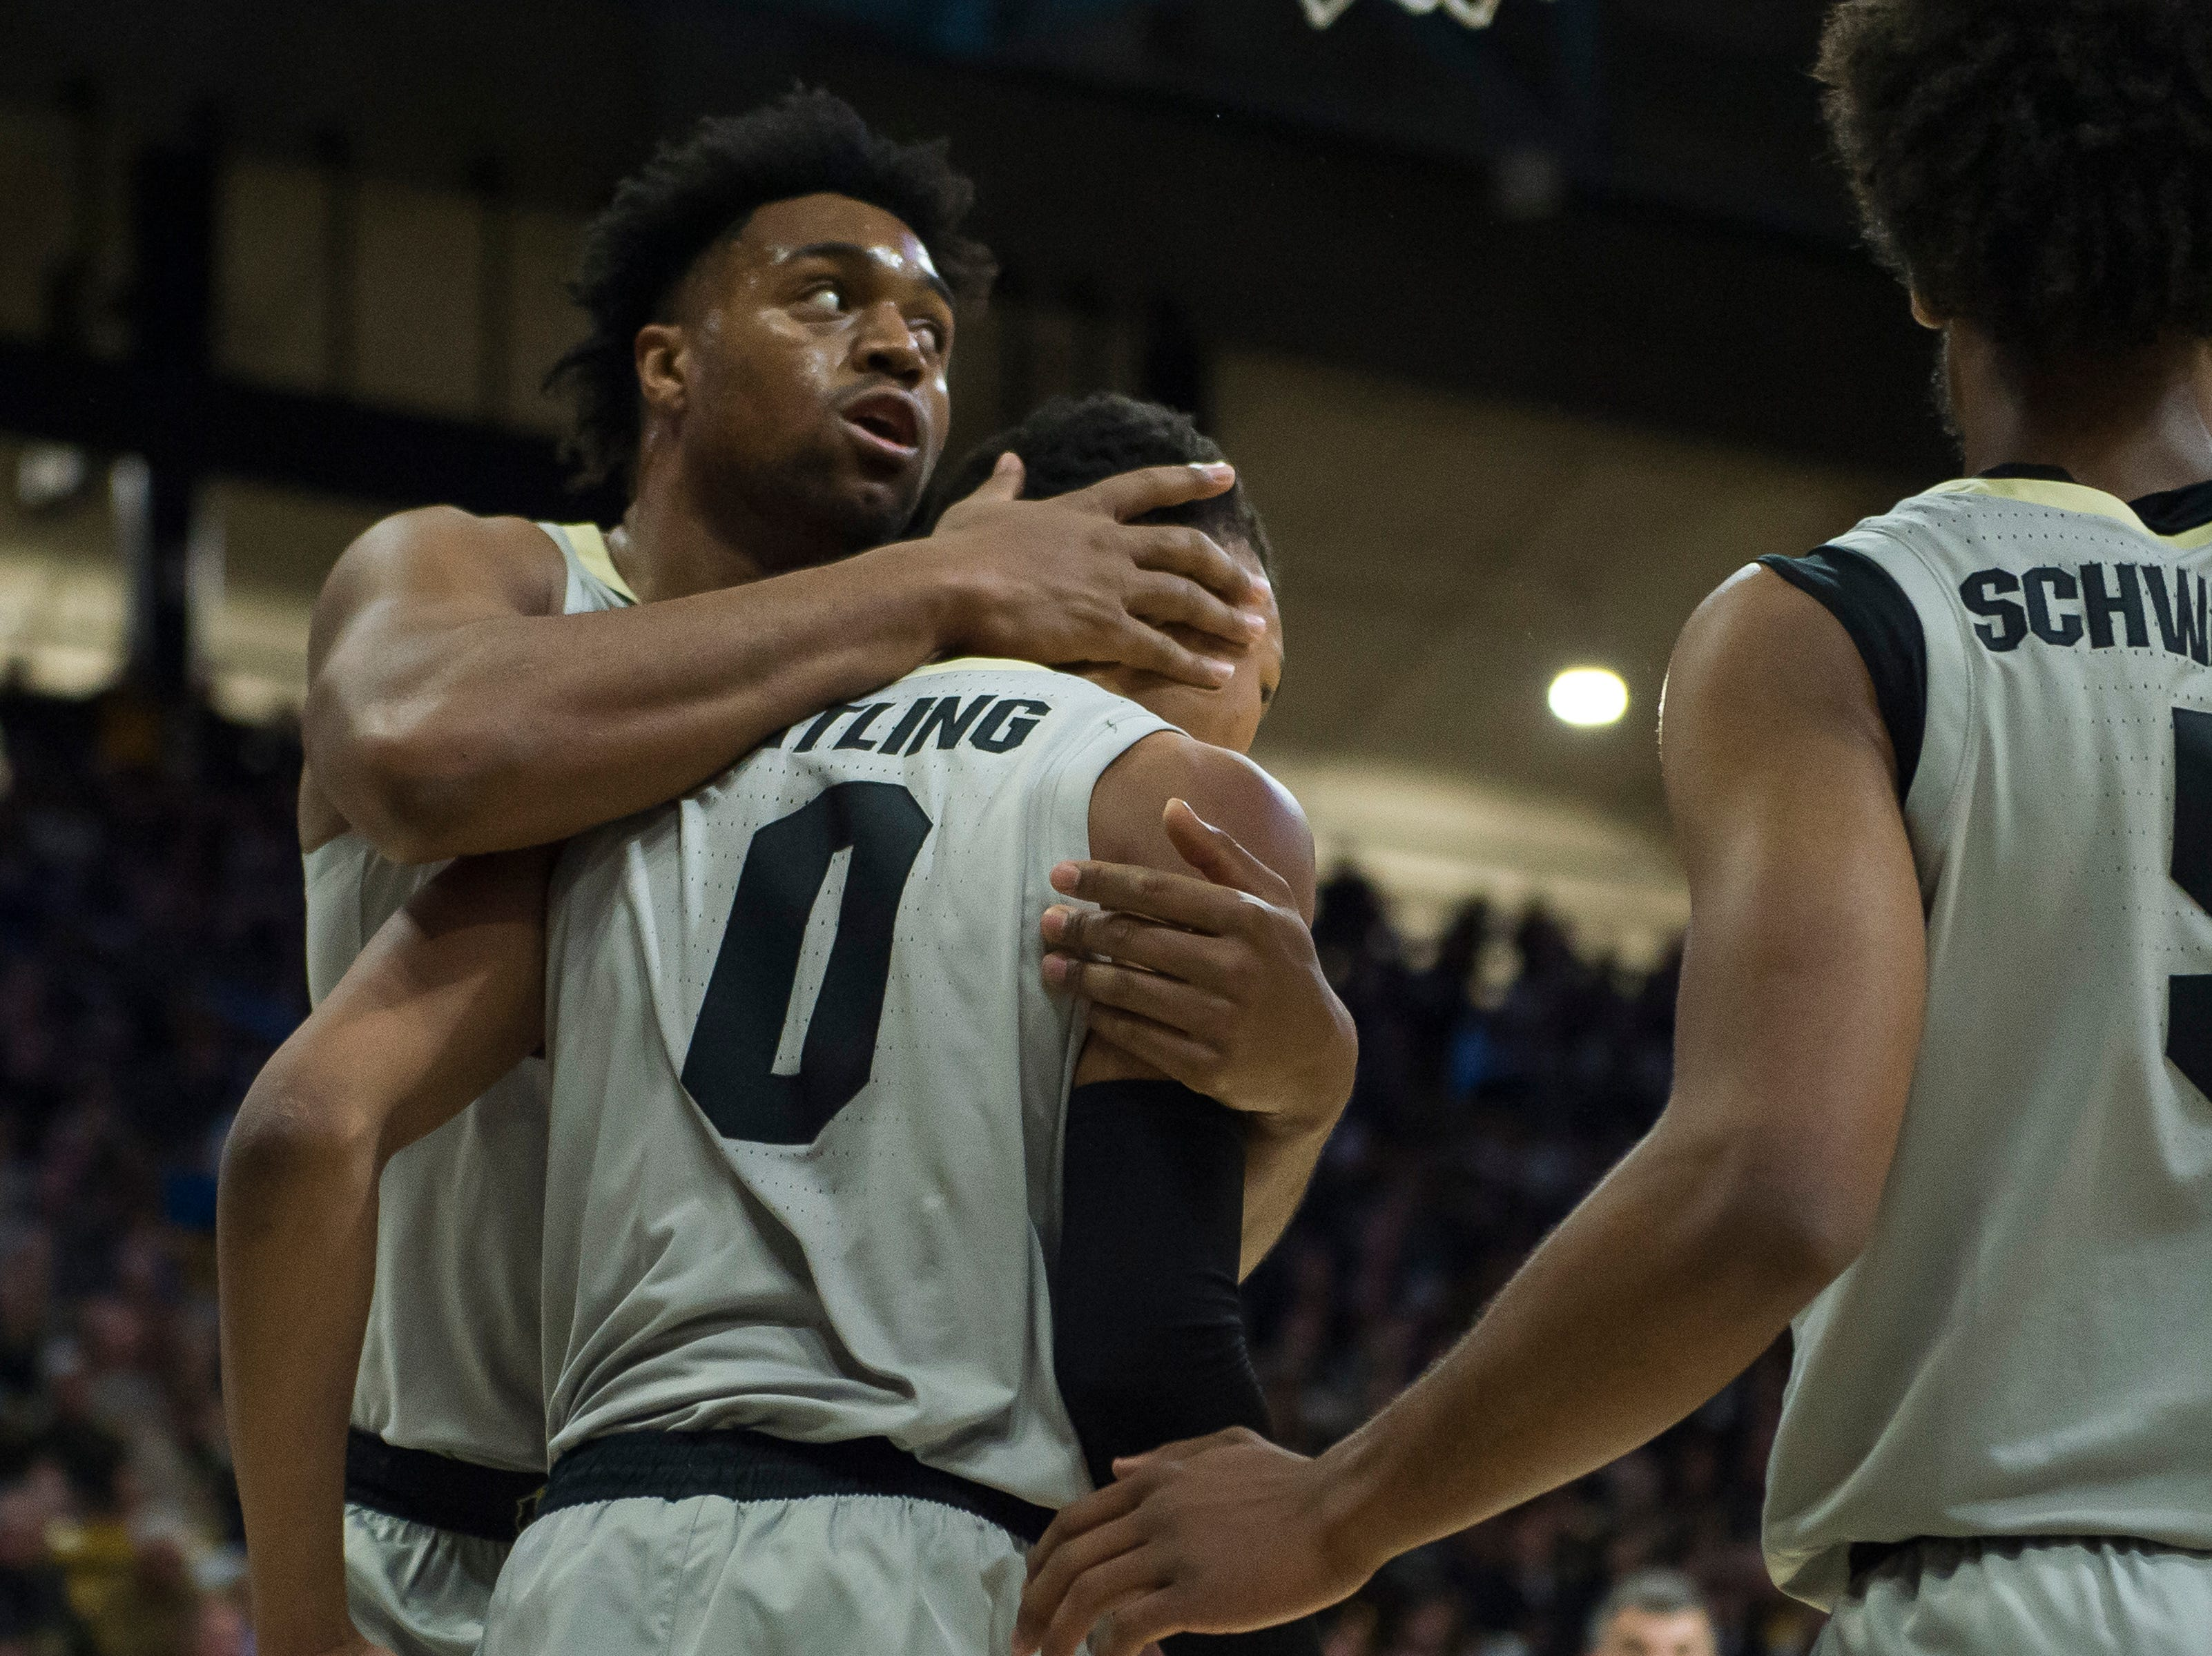 University of Colorado freshman forward Evan Battey (21) comforts junior guard Shane Gatling (0) during game against Colorado State University on Saturday, Dec. 1, 2018, at the CU Event Center in Boulder, Colo.